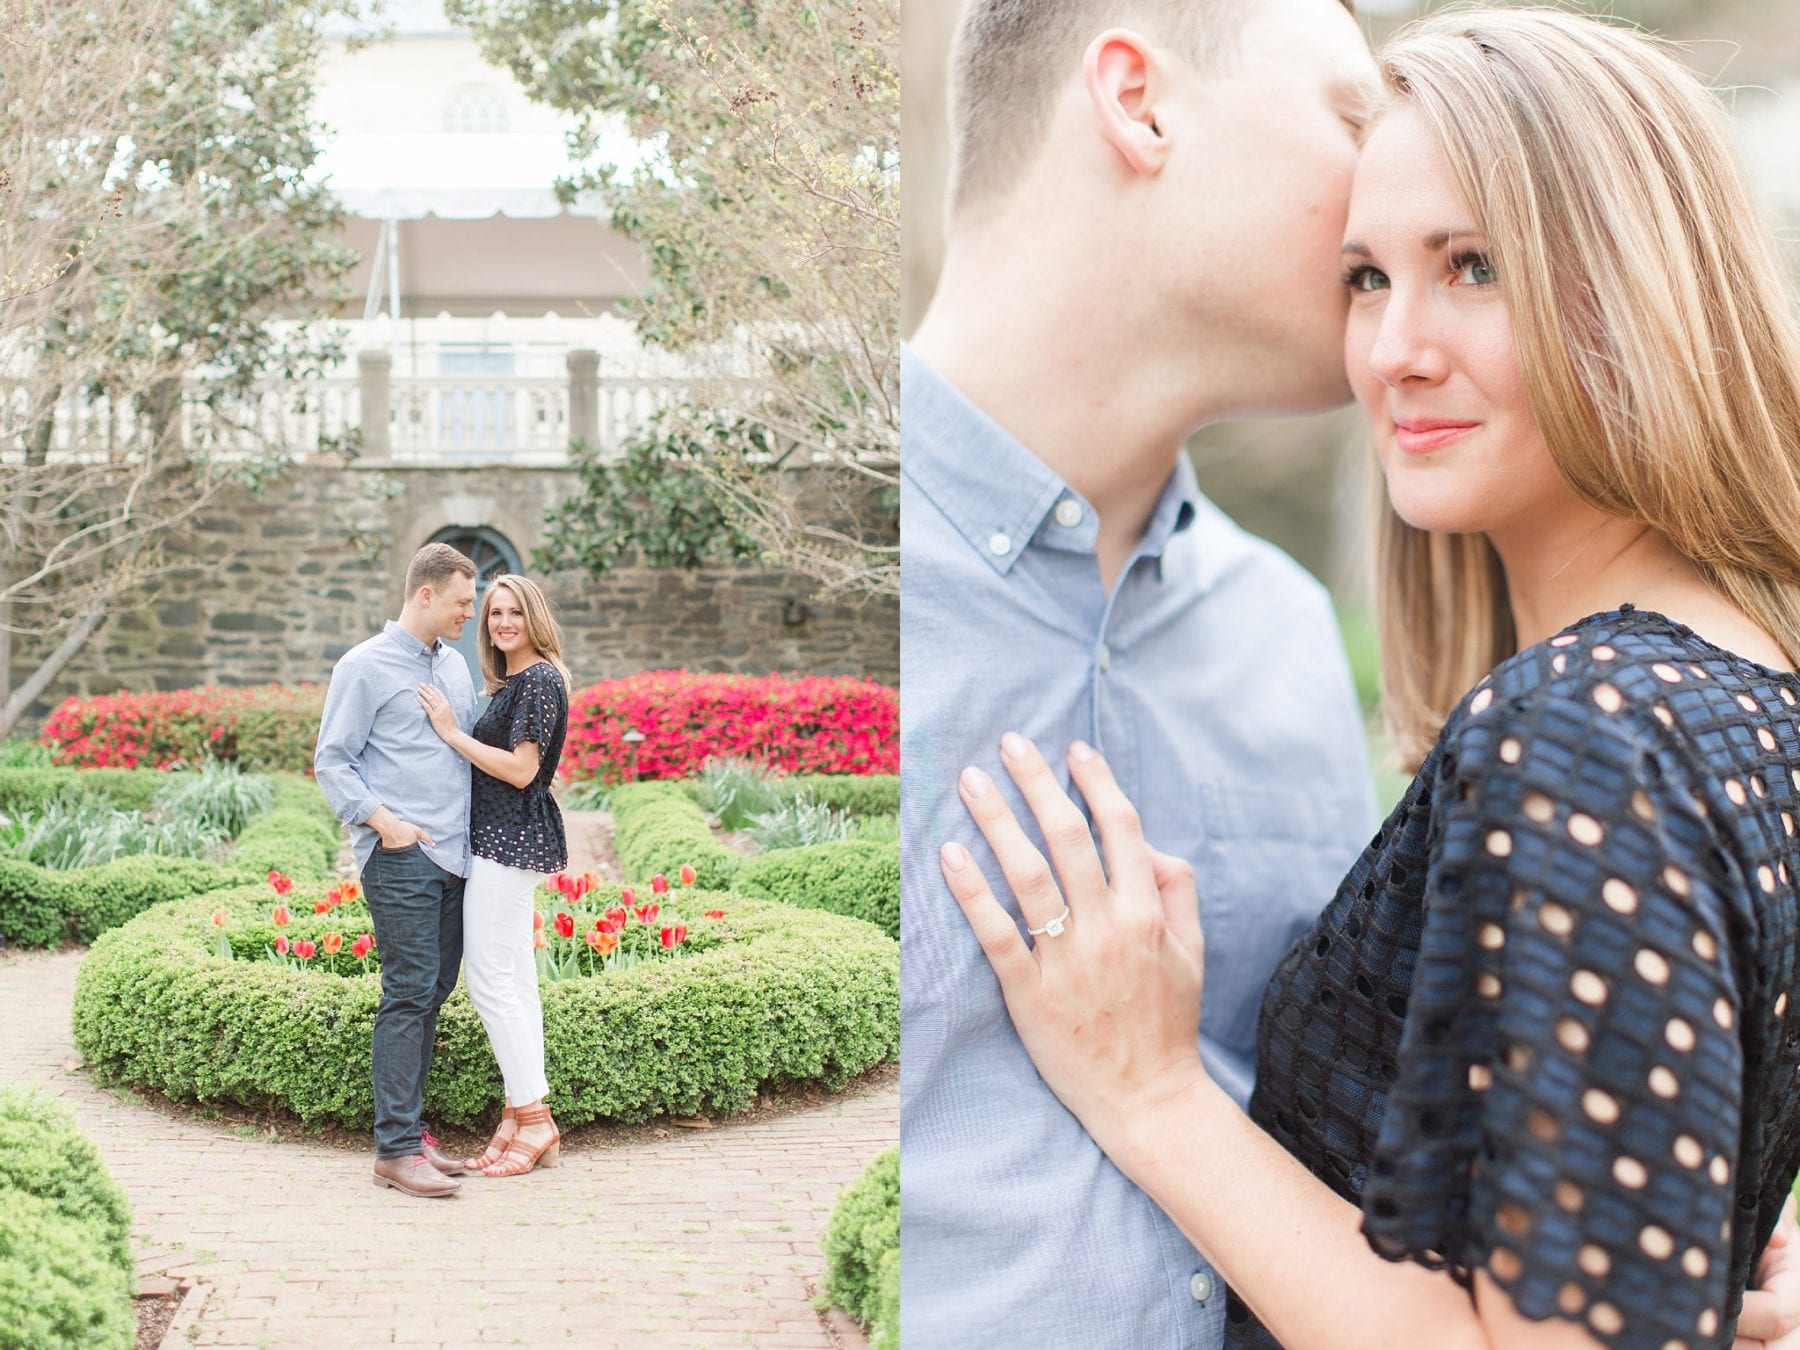 Springtime Old Town Alexandria Engagement Session Matt & Maxie Megan Kelsey Photography-253.jpg